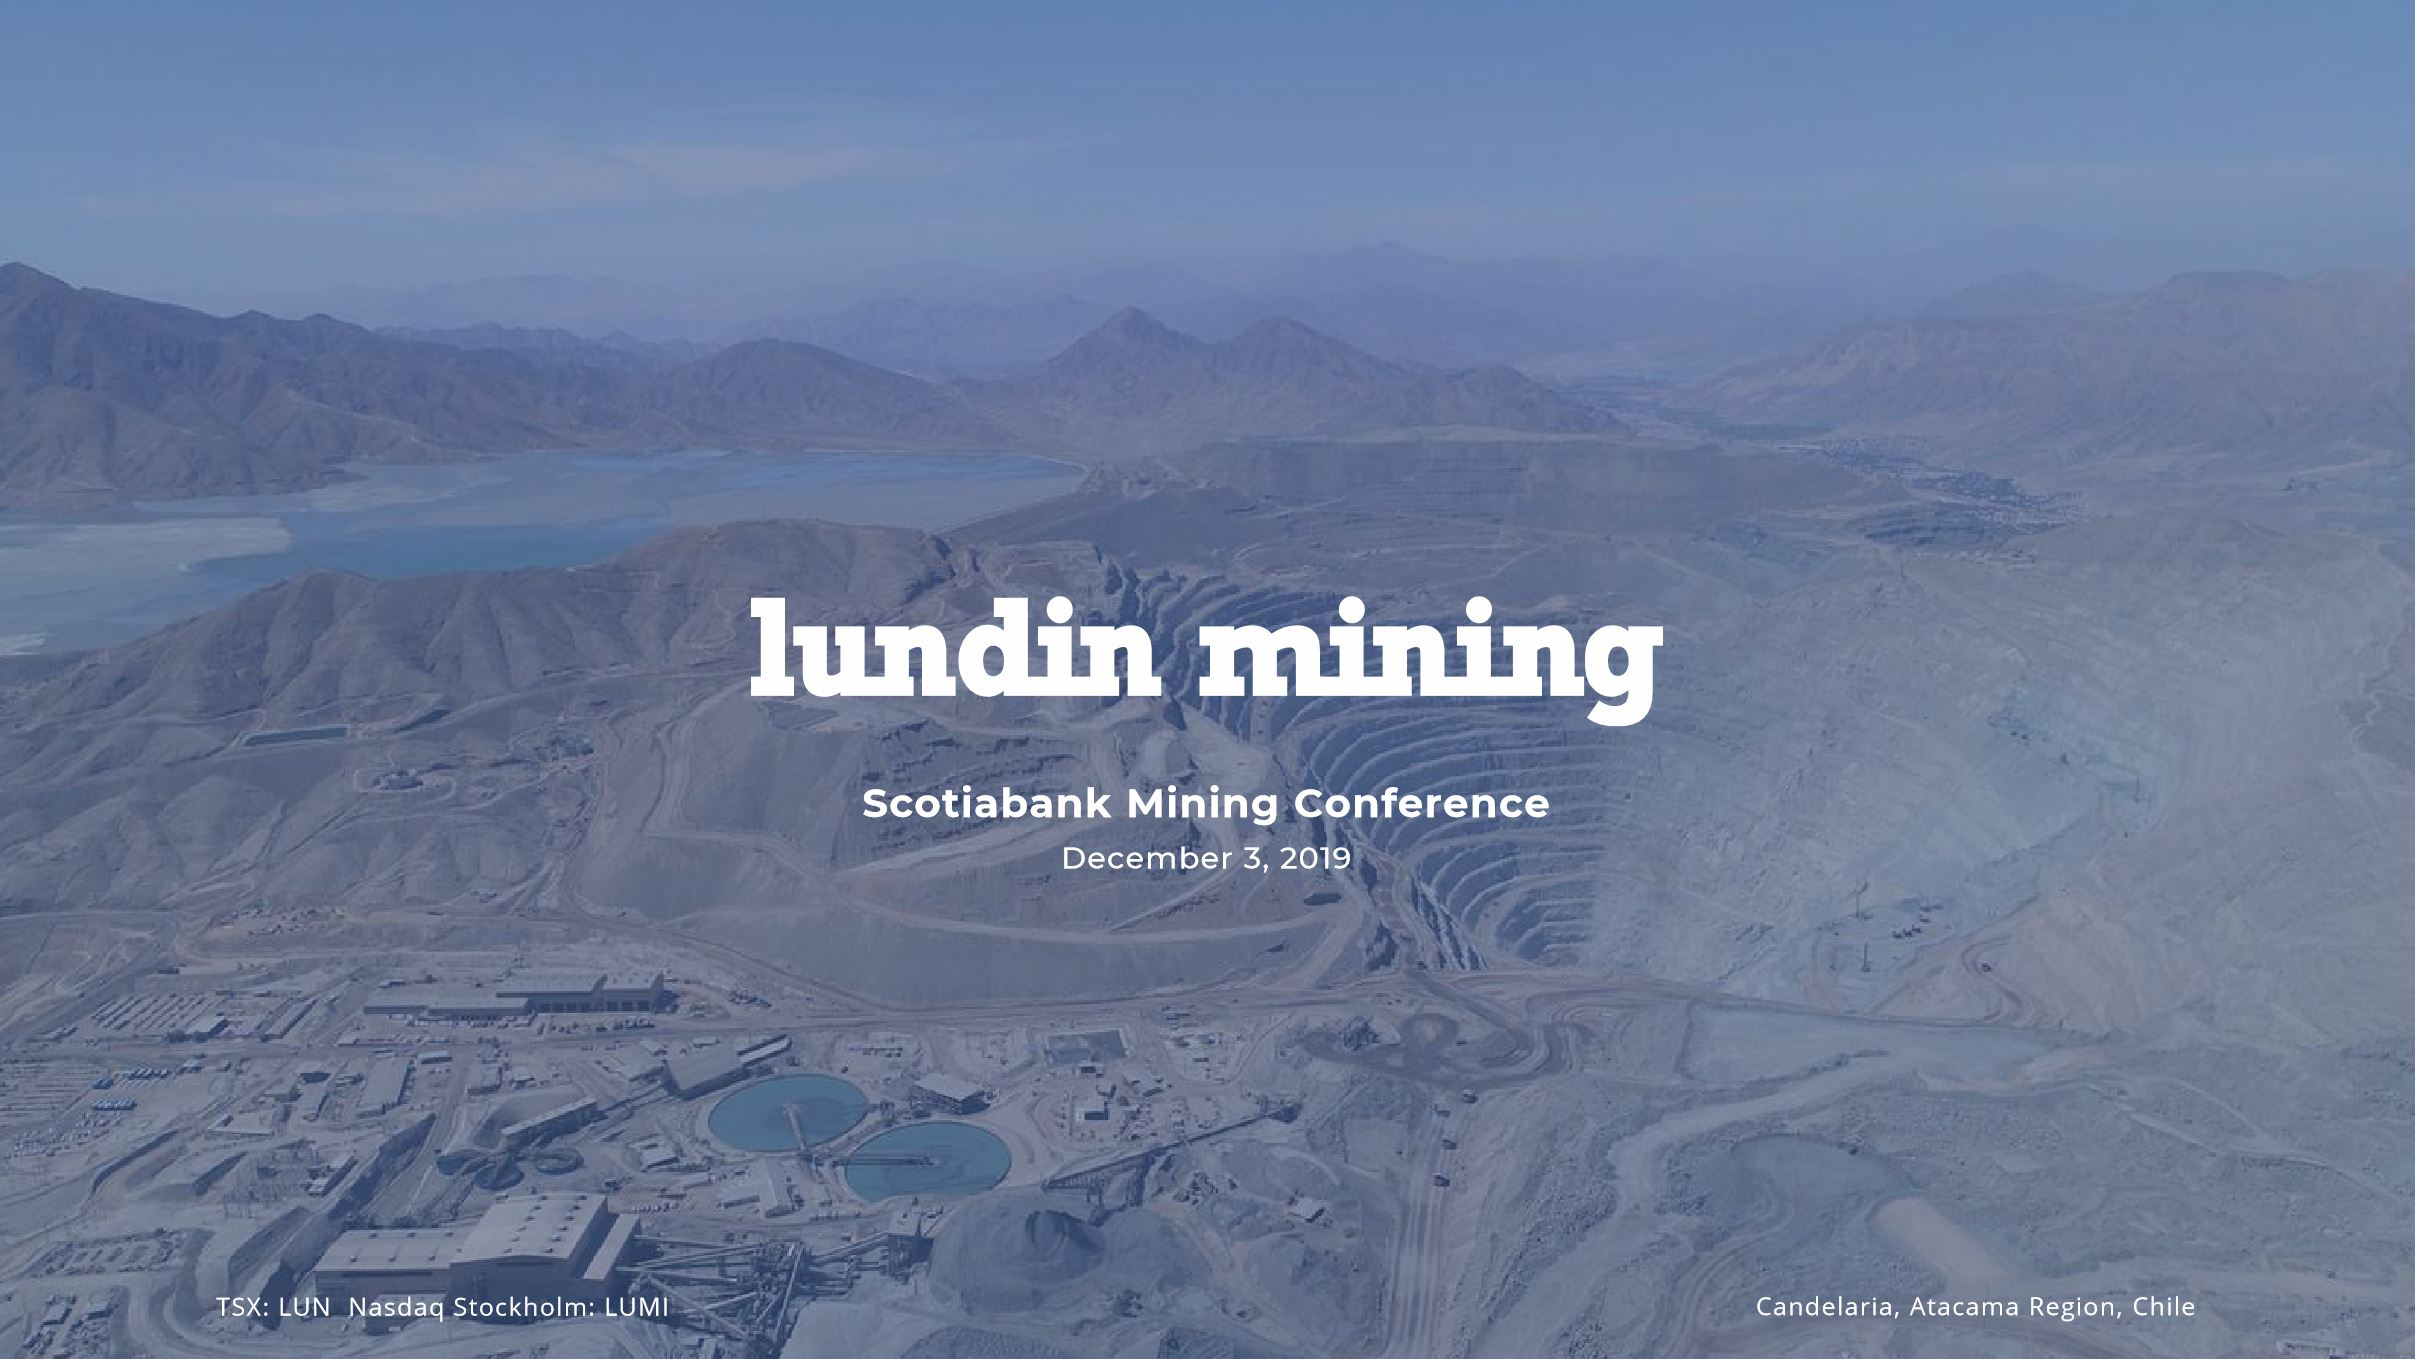 Scotiabank Mining Conference